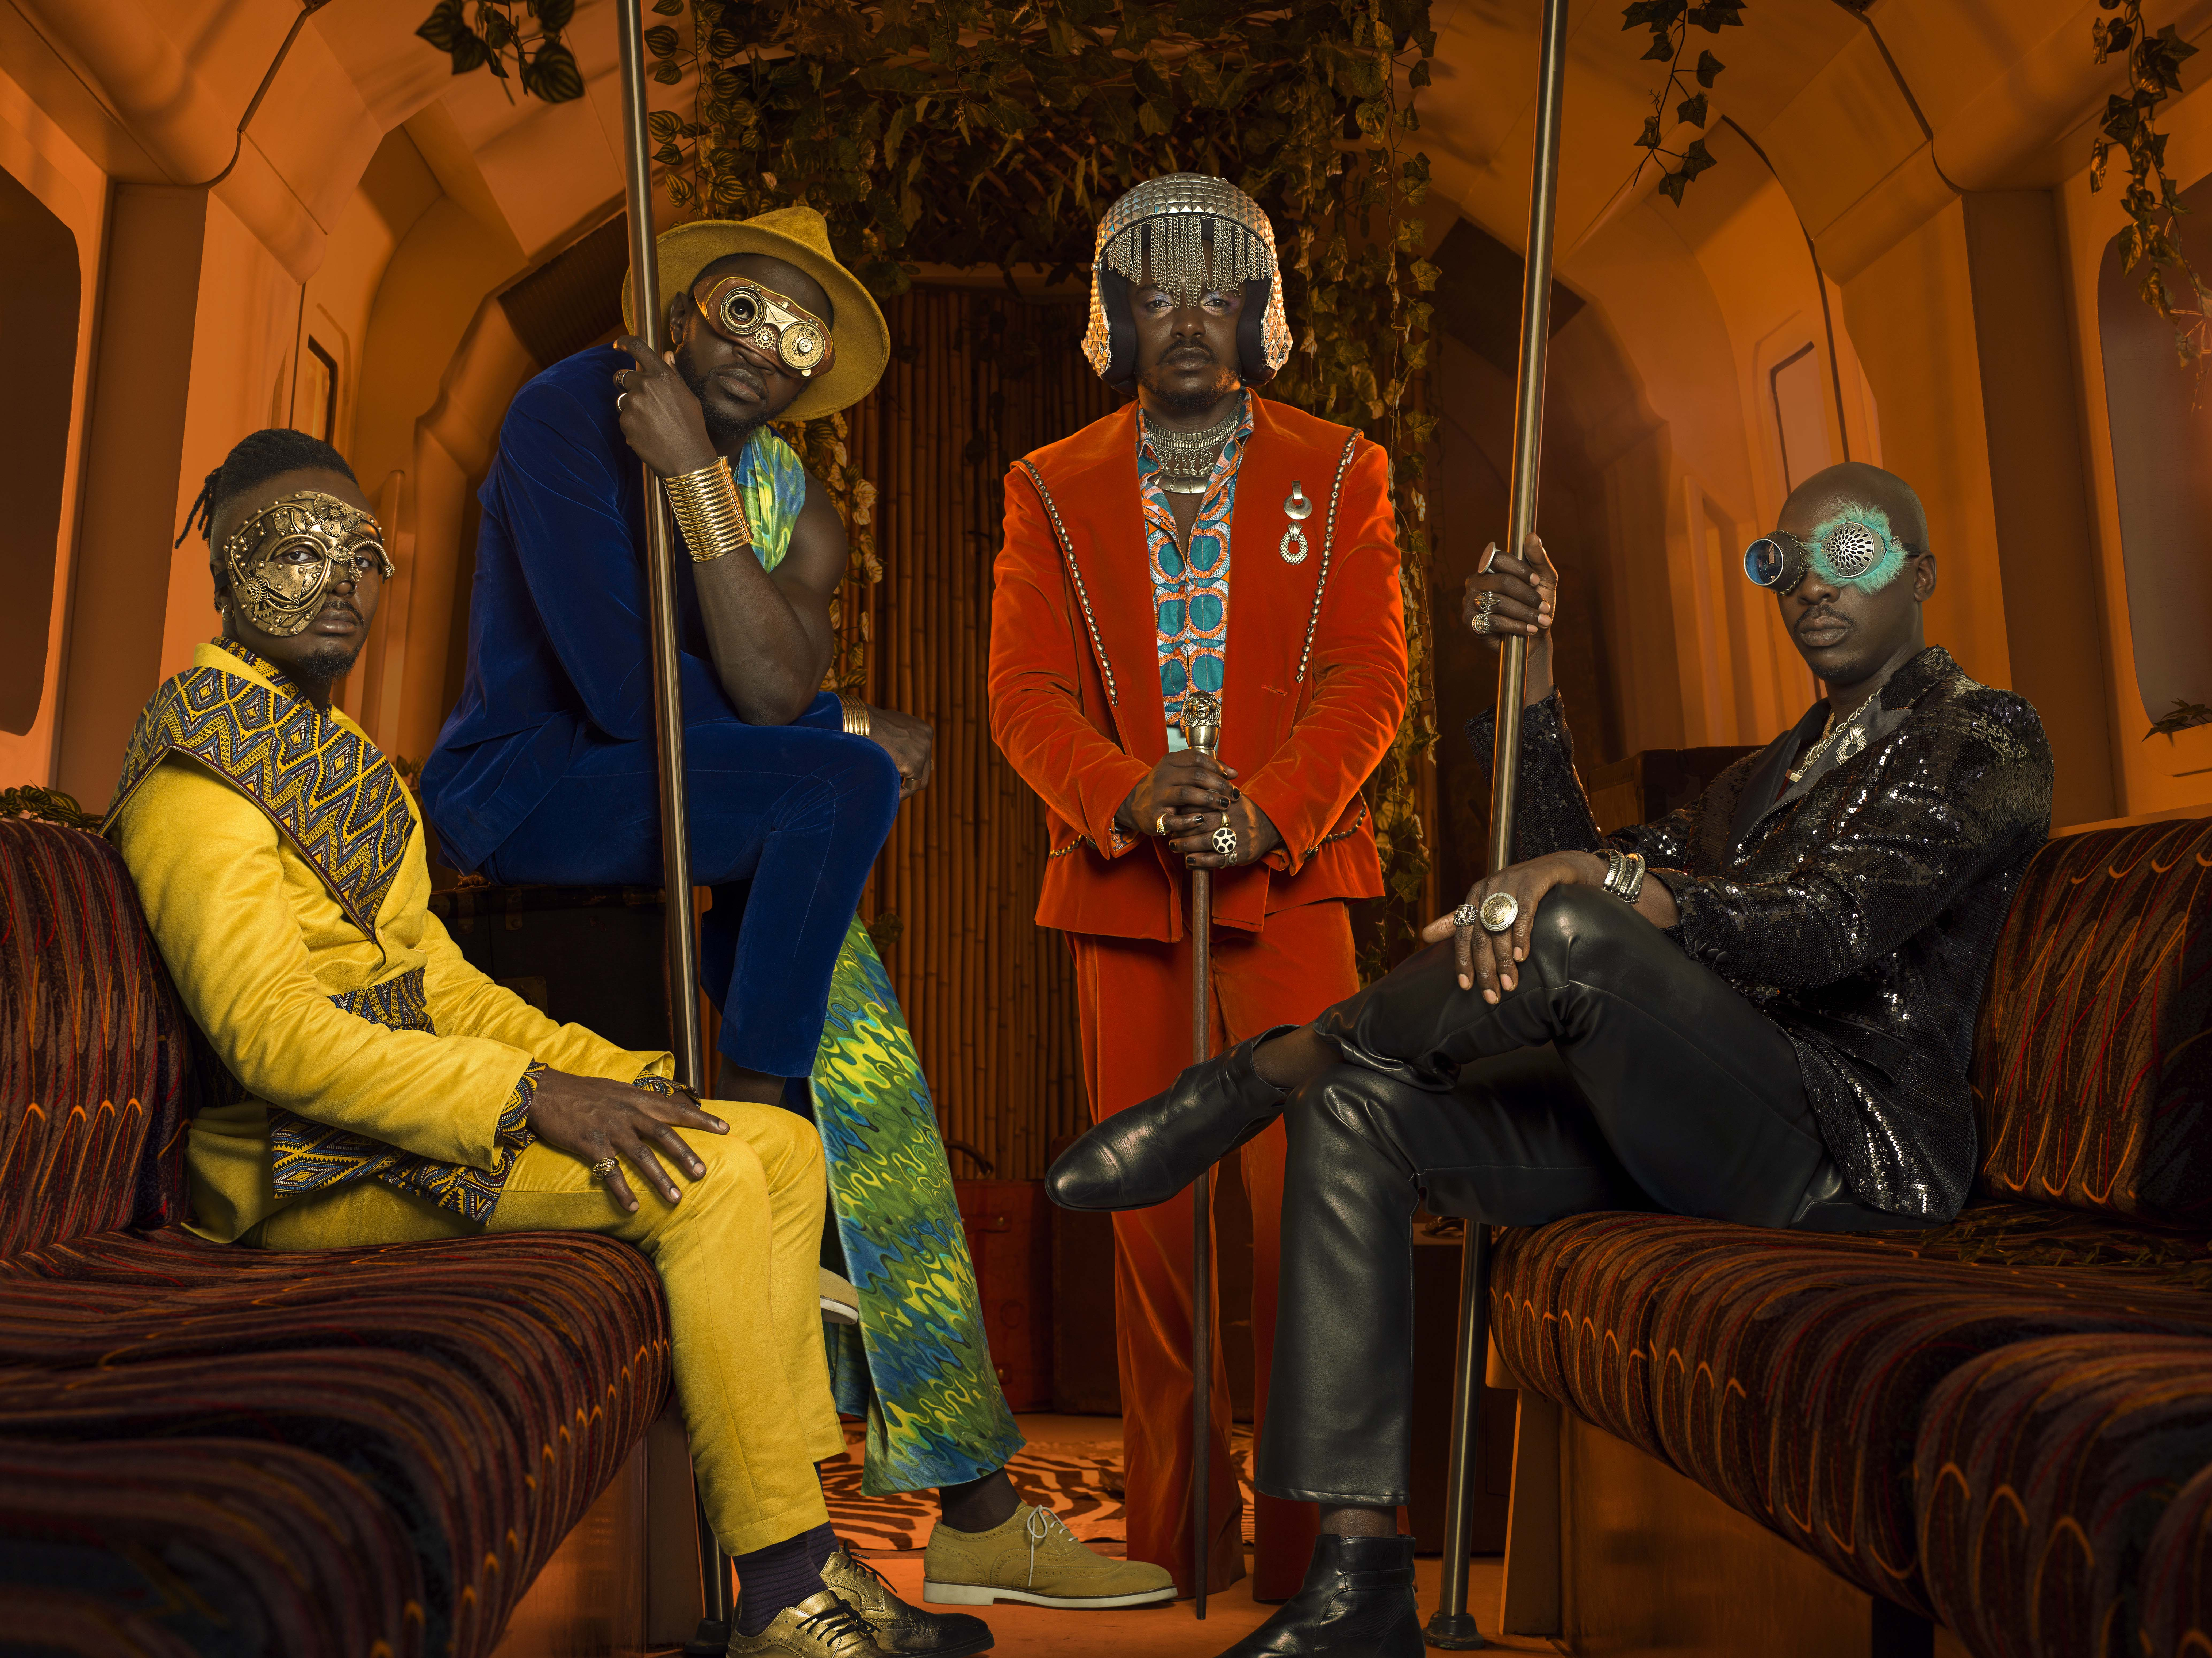 sauti sol streaming live concert 22 august